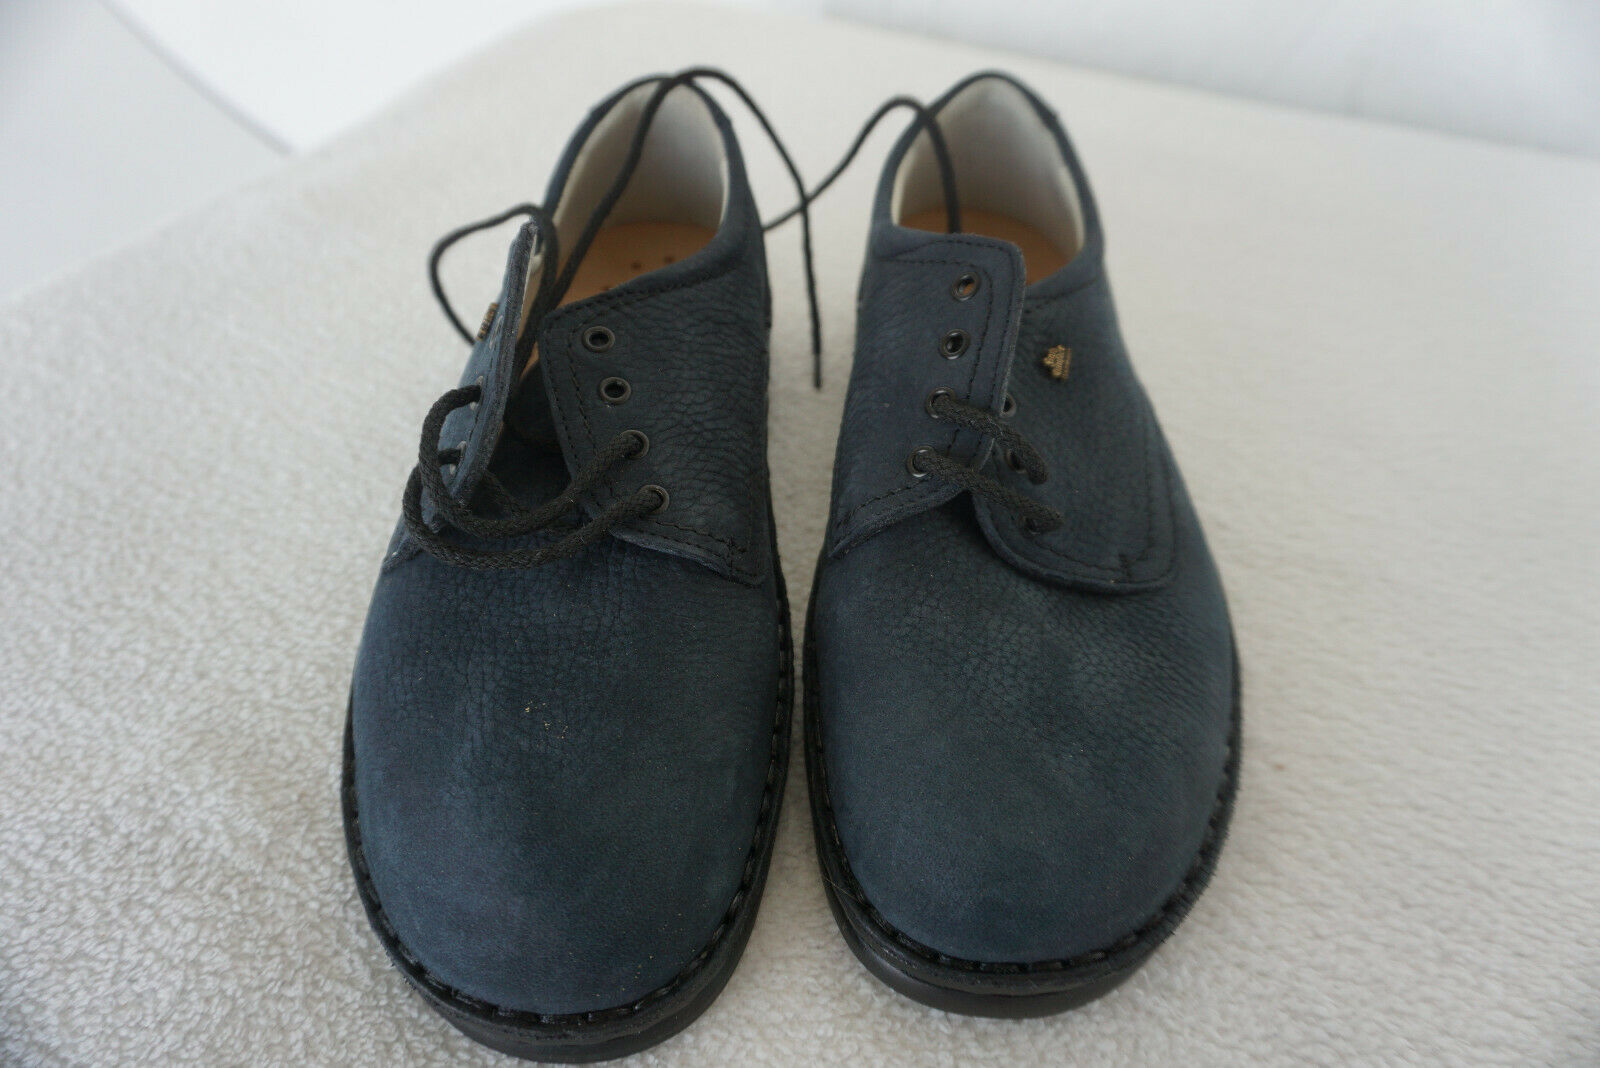 Finn Comfort COLMAR shoes Lace Up shoes Insoles Size 4 37 Nubuck Leather Navy New